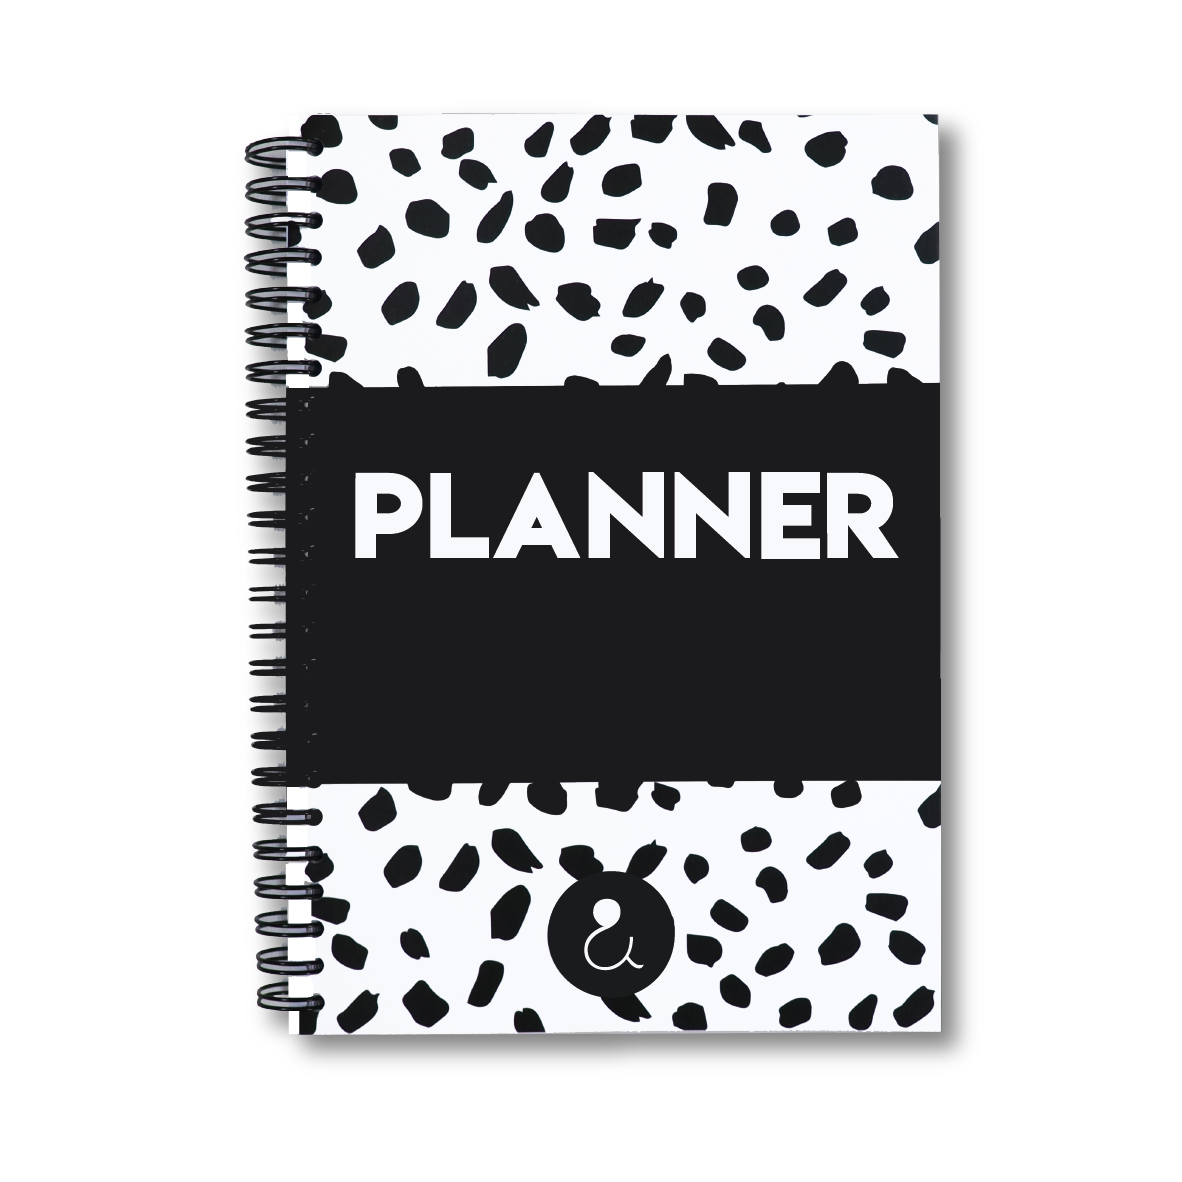 Planner a5 met stickers | monochrome